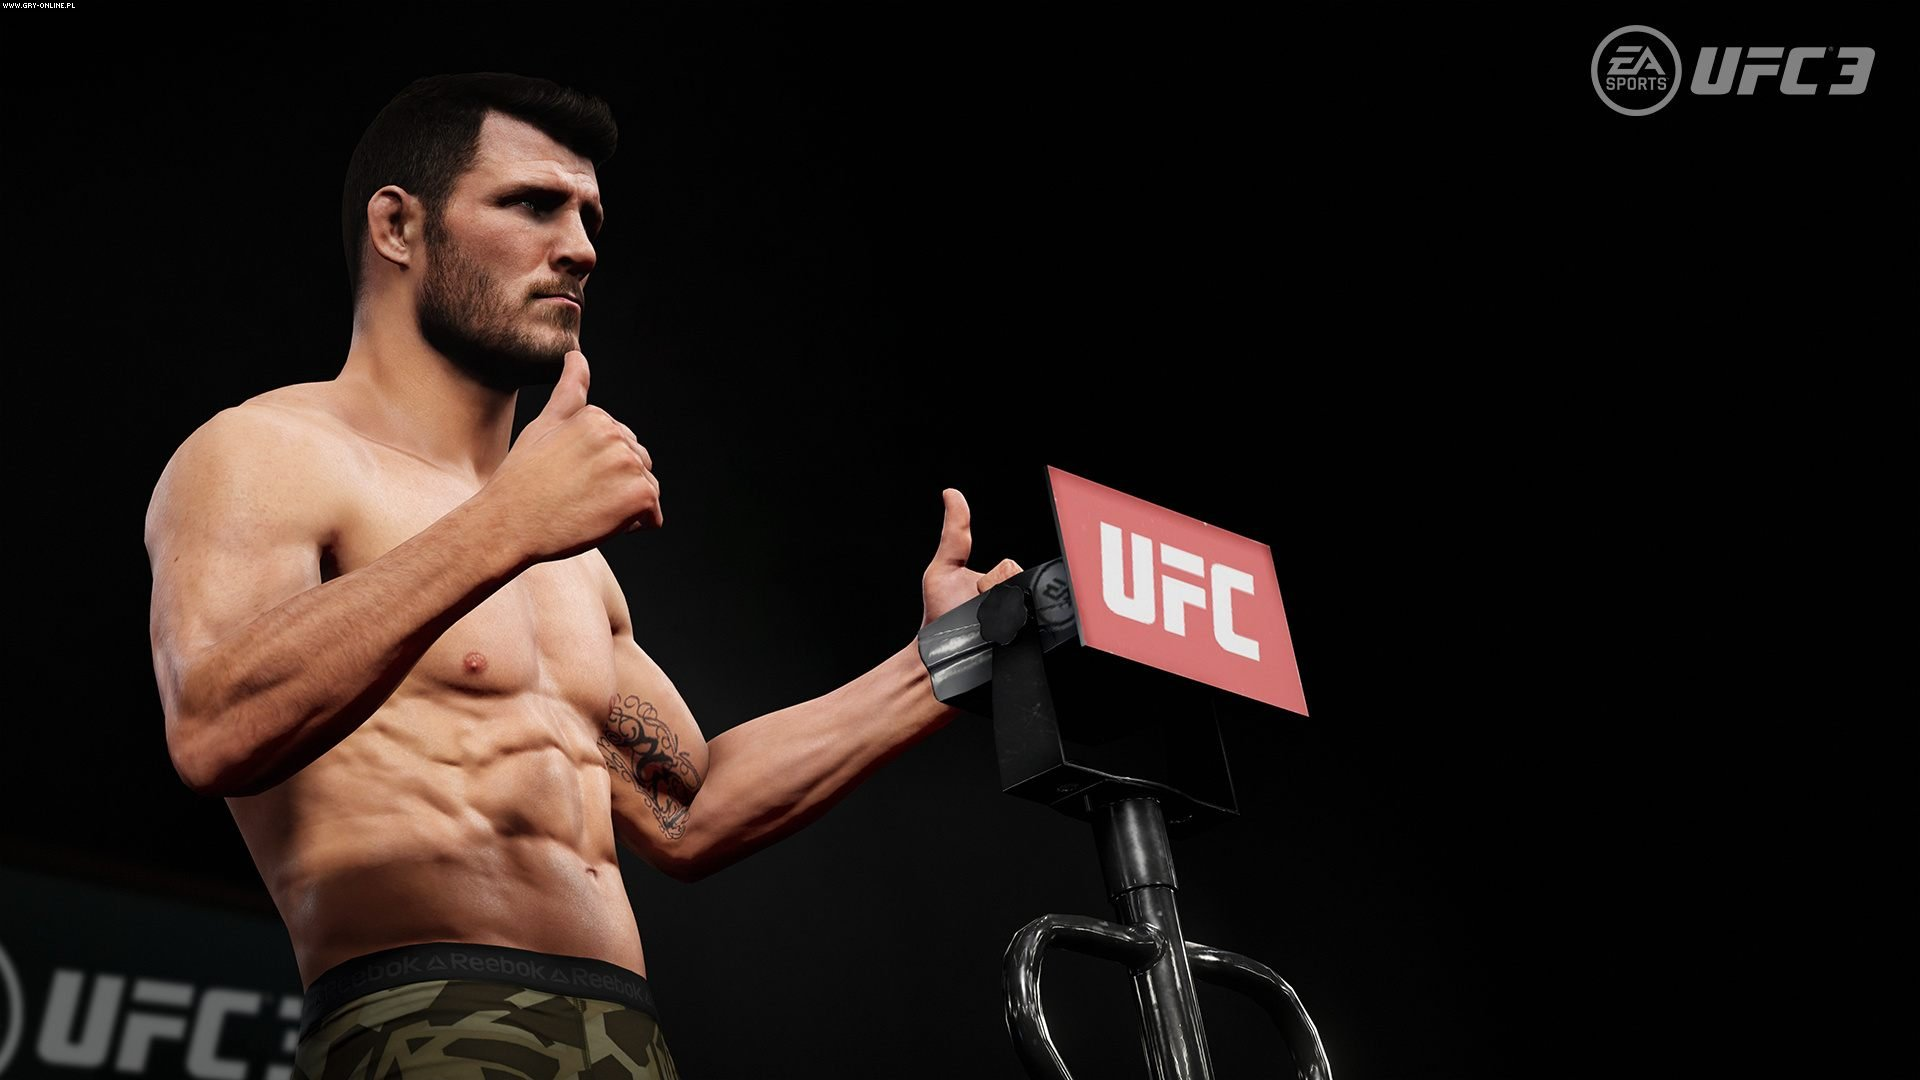 EA Sports UFC 3 PS4, XONE Games Image 8/8, EA Sports, Electronic Arts Inc.